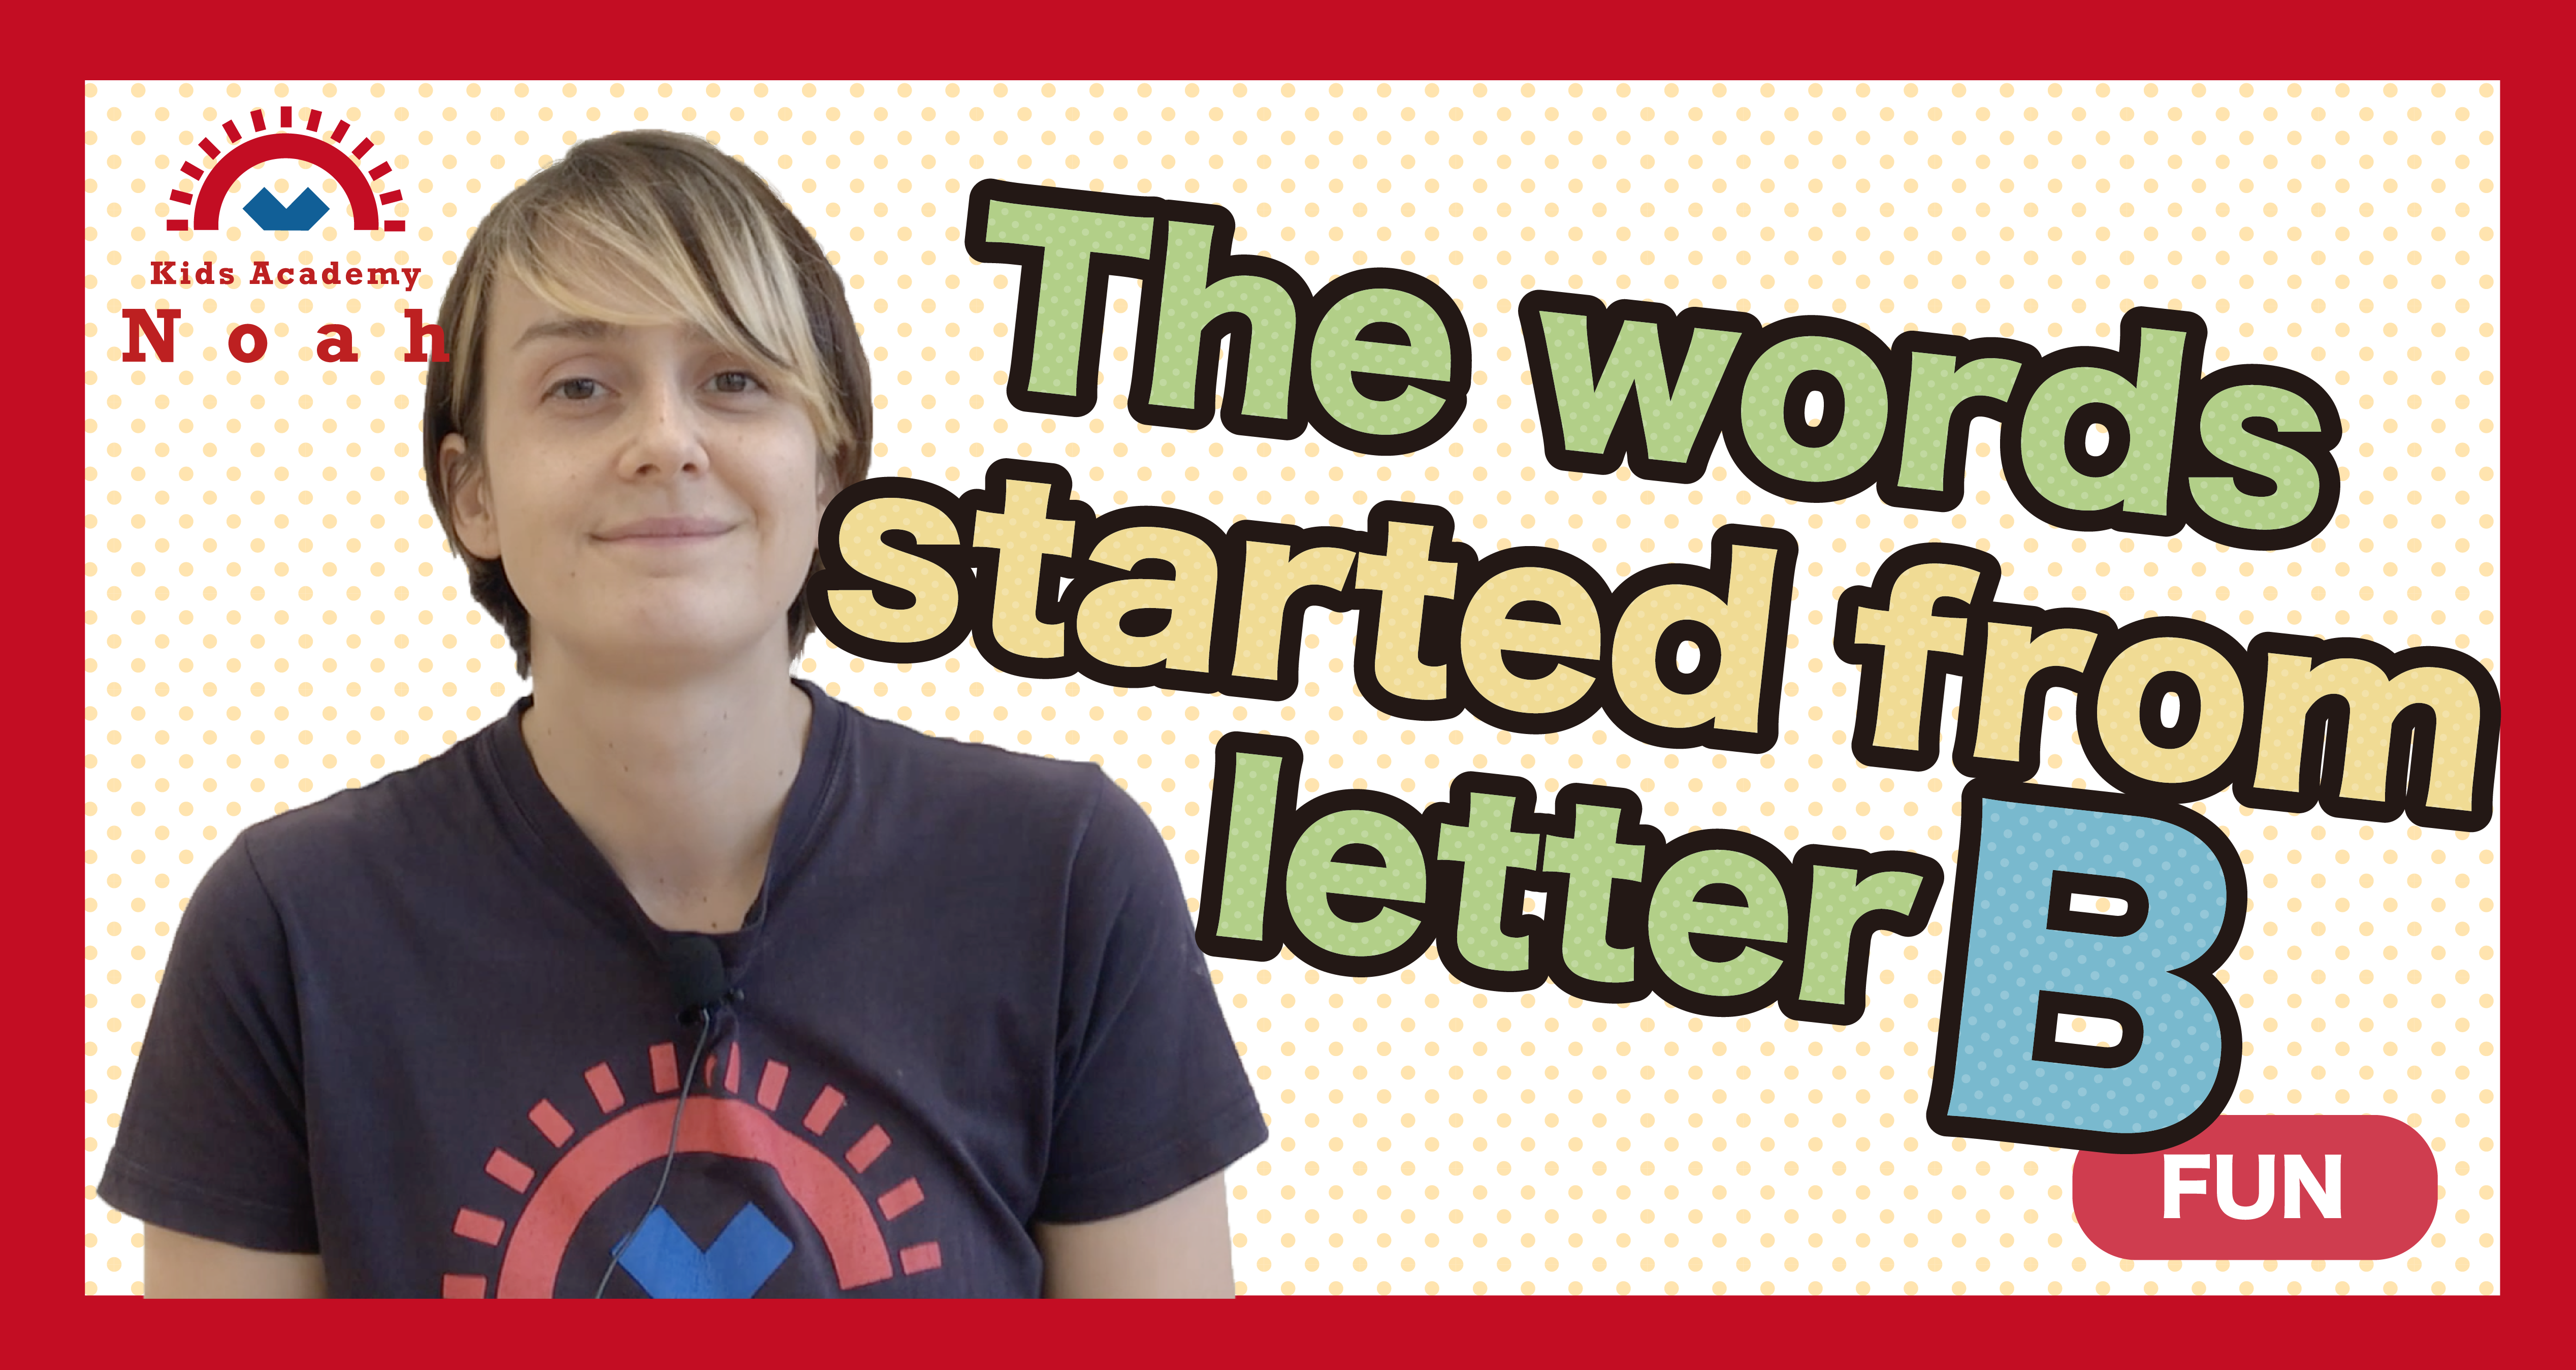 The words started from letter B-FUN-